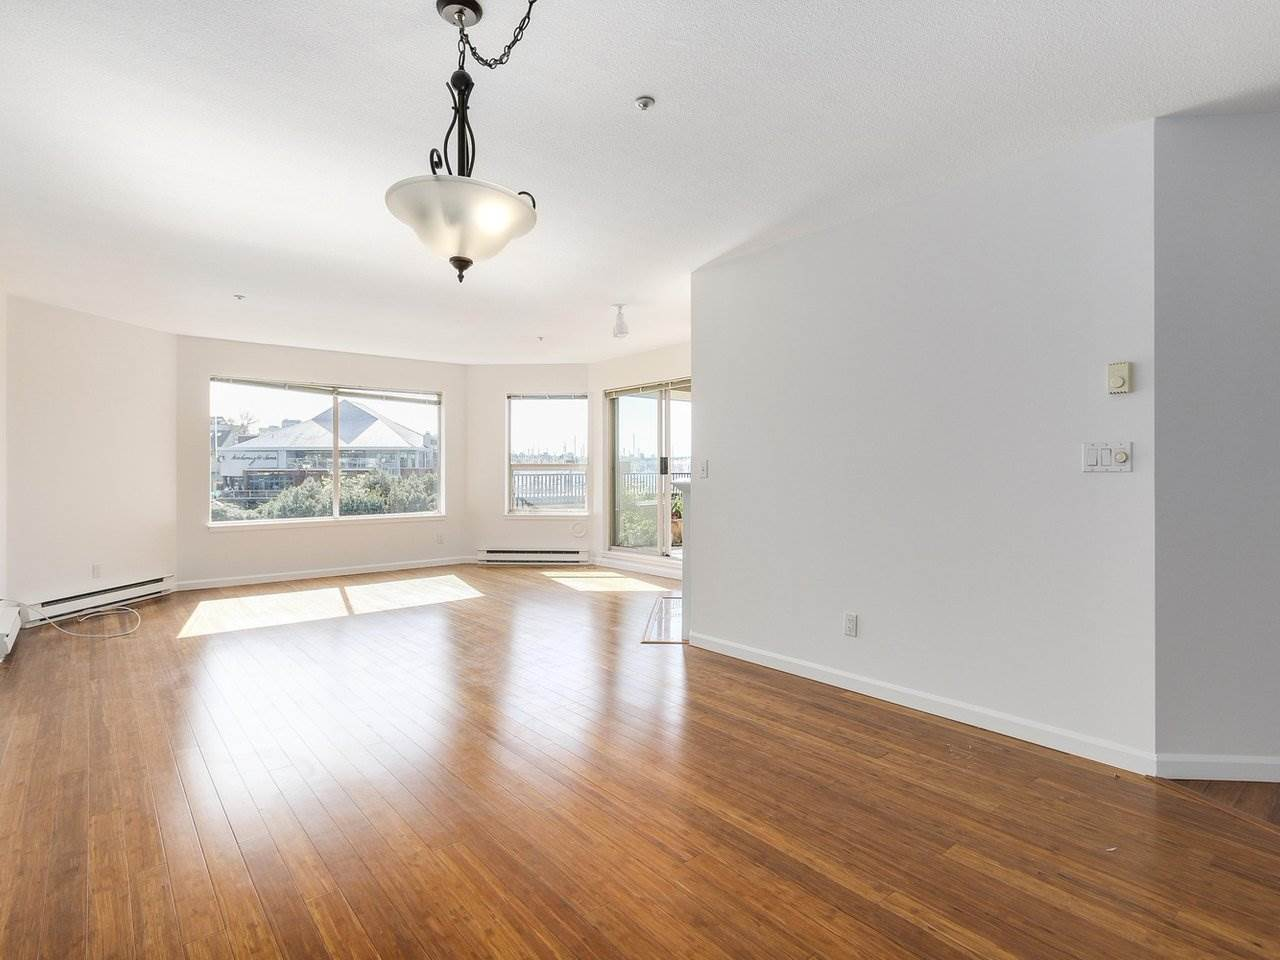 Condo Apartment at 221 525 WHEELHOUSE SQUARE, Unit 221, Vancouver West, British Columbia. Image 2